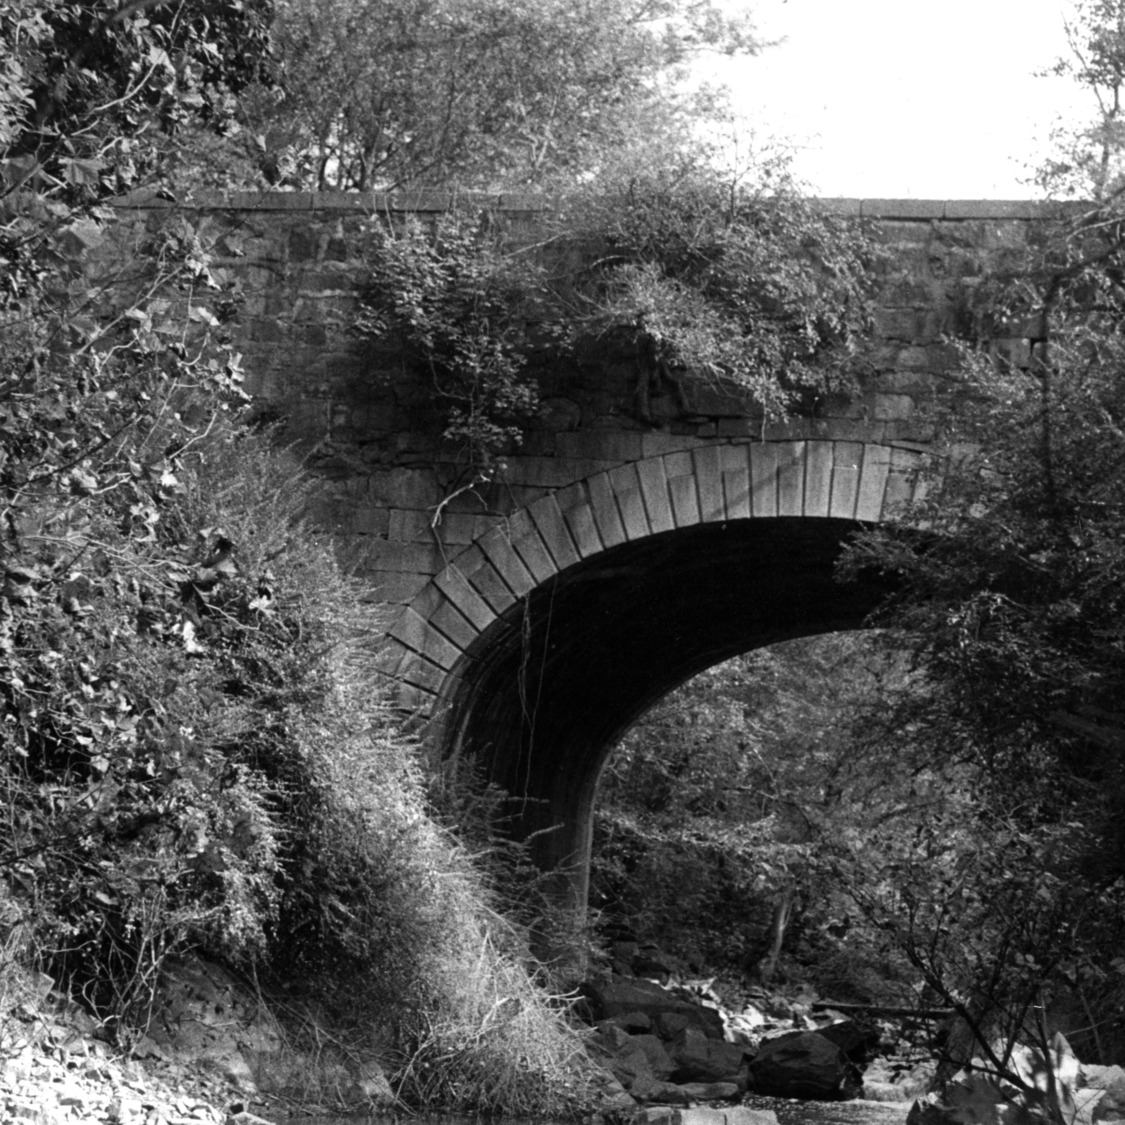 View, Chockoyotte Aqueduct, Halifax County, North Carolina